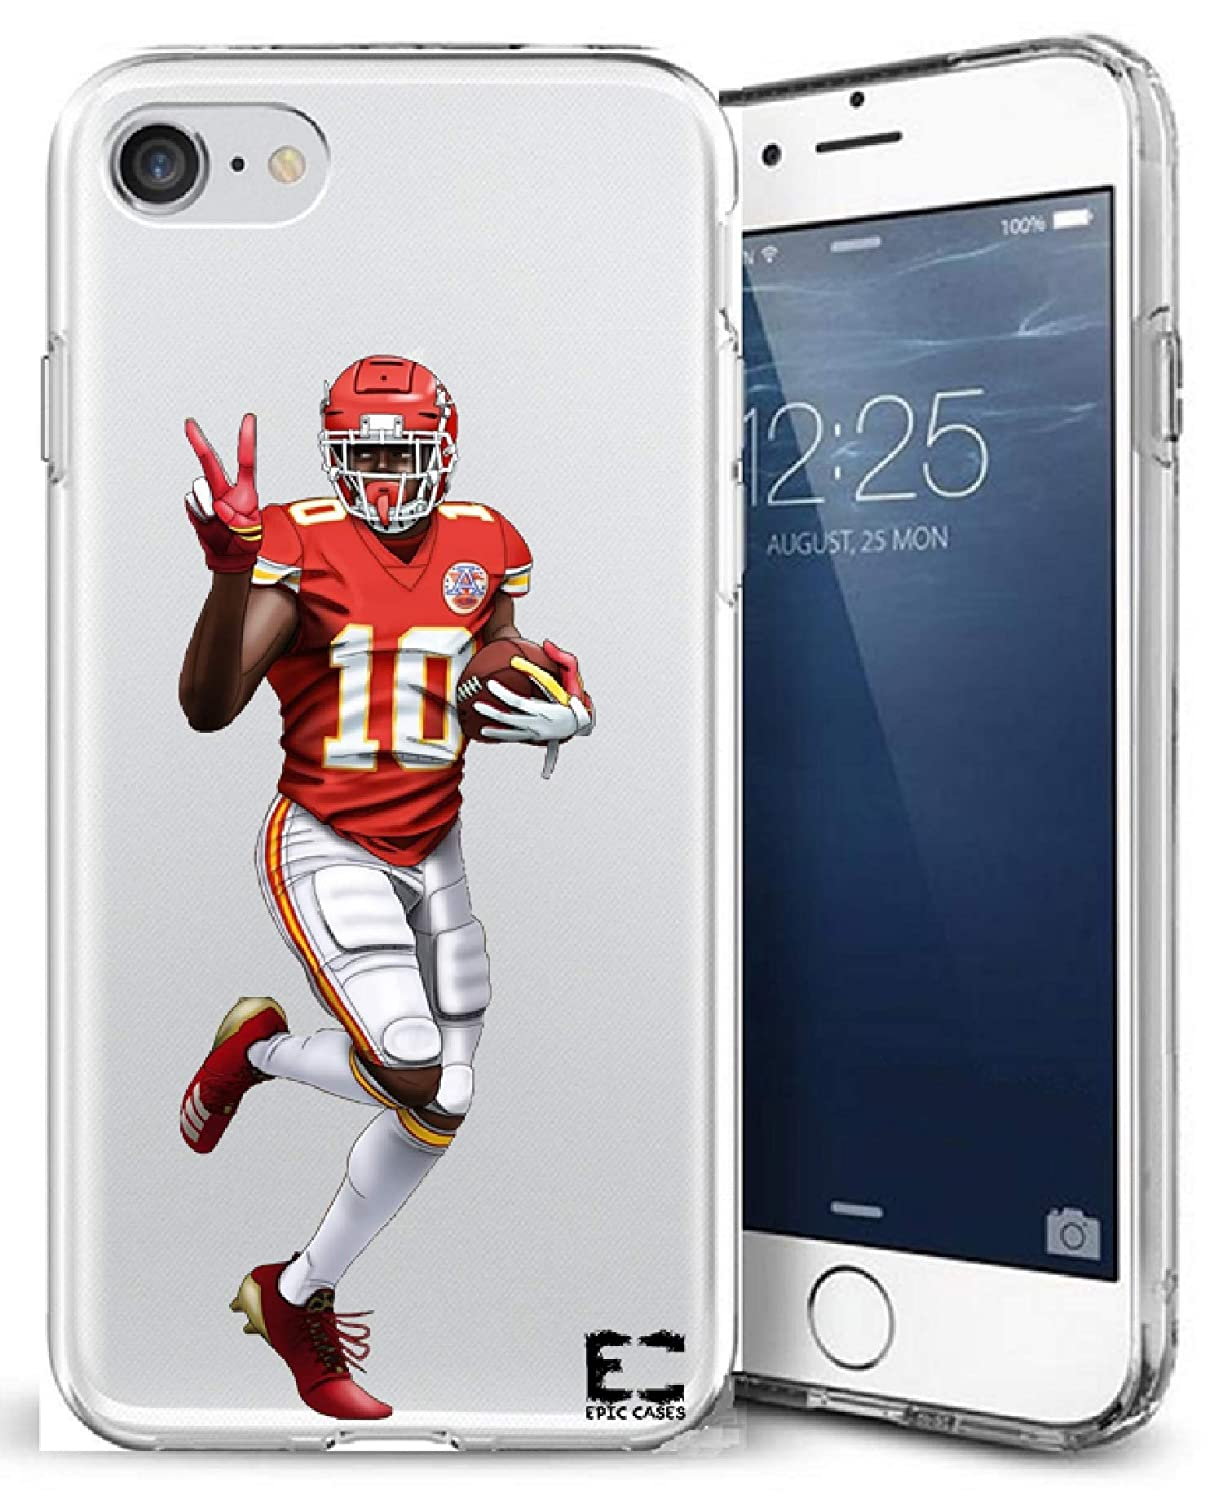 info for 1d15c 70bb6 iPhone6 Plus iPhone 7/iPhone 8 Plus Case Epic Cases Ultra Slim Crystal  Clear Football Series Soft Transparent TPU Case Cover Apple (iPhone 6 ...